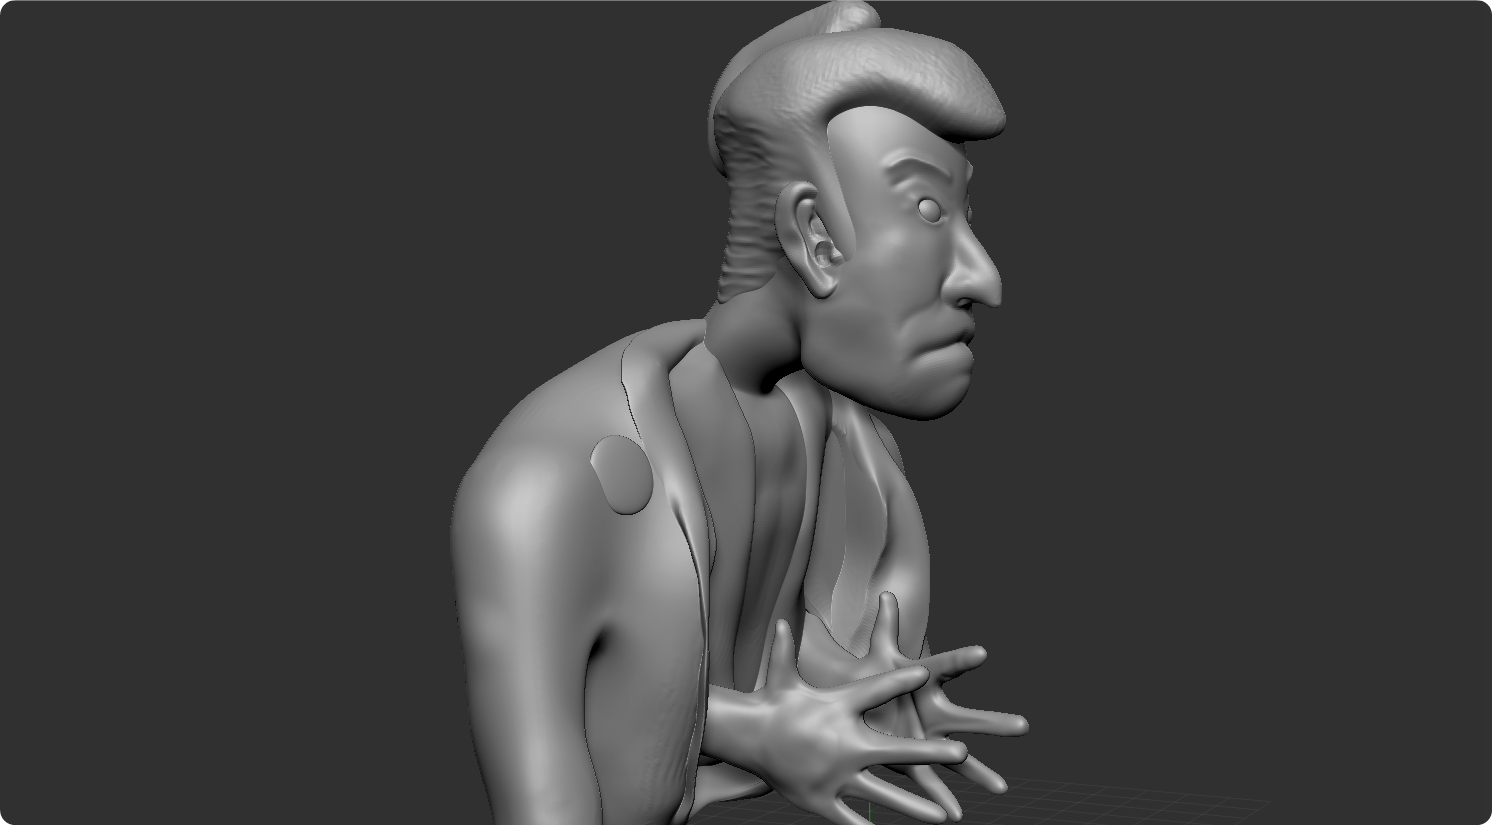 ZBrushCore_2016-10-22_10-00-26.png